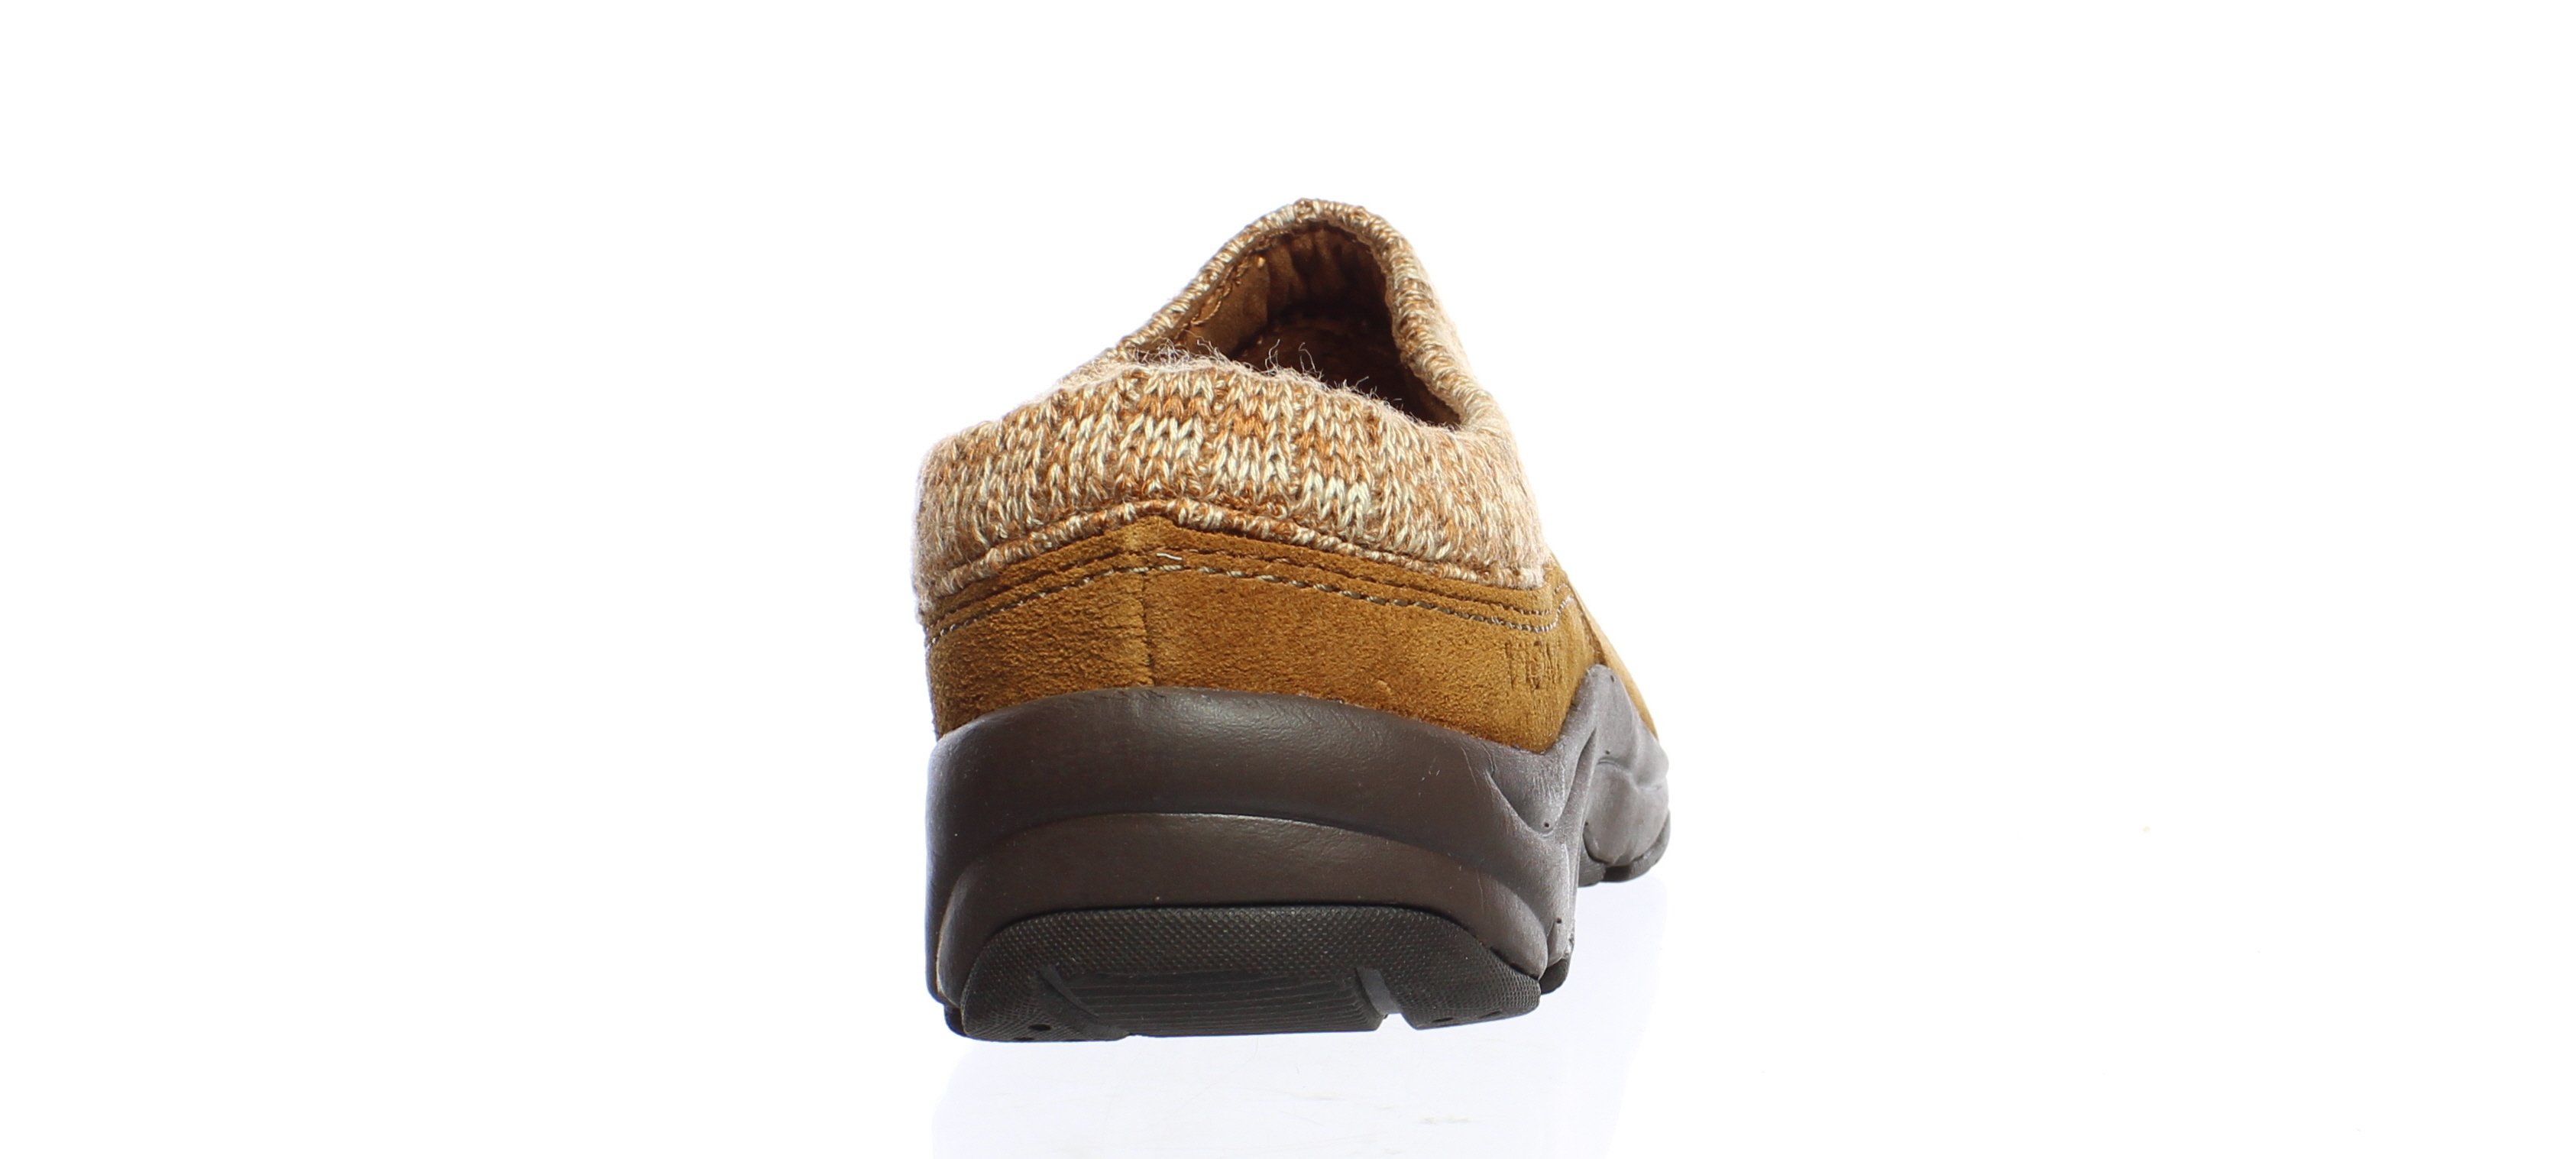 Vionic-Womens-Action-Arbor-Suede-Leather-Casual-Comfort-Clogs thumbnail 7